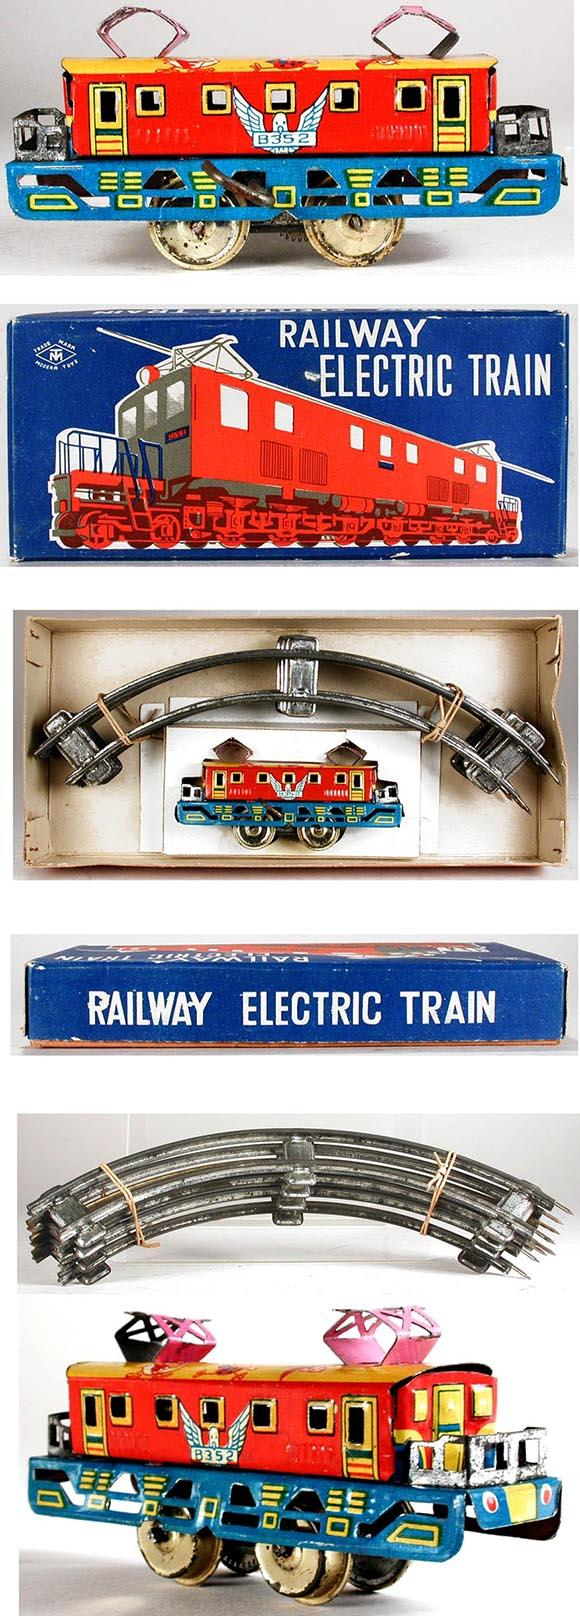 c.1950 Masudaya, Clockwork Railway Electric Train in Original Box